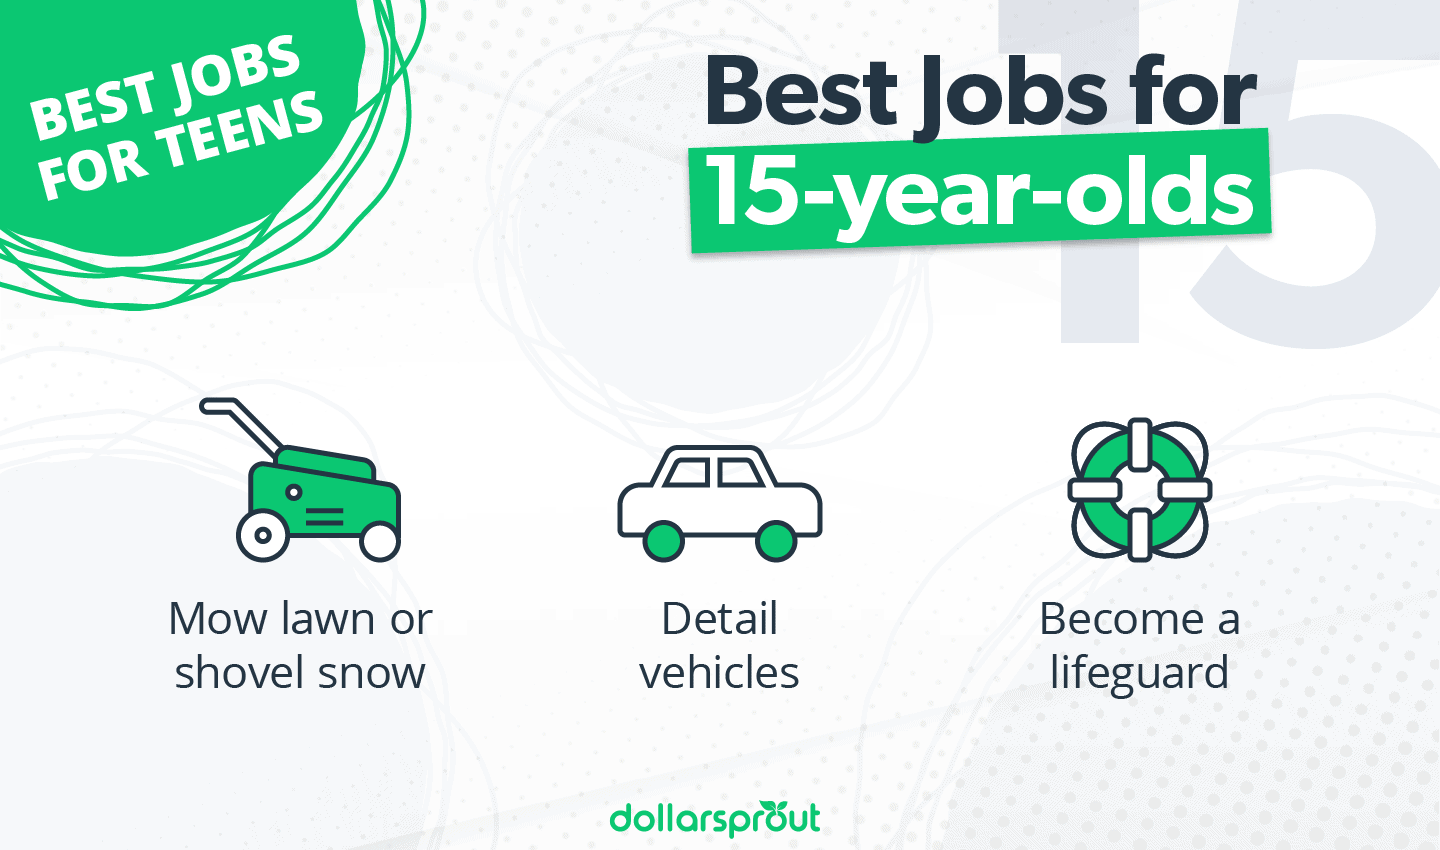 Best Jobs for 15-year-olds